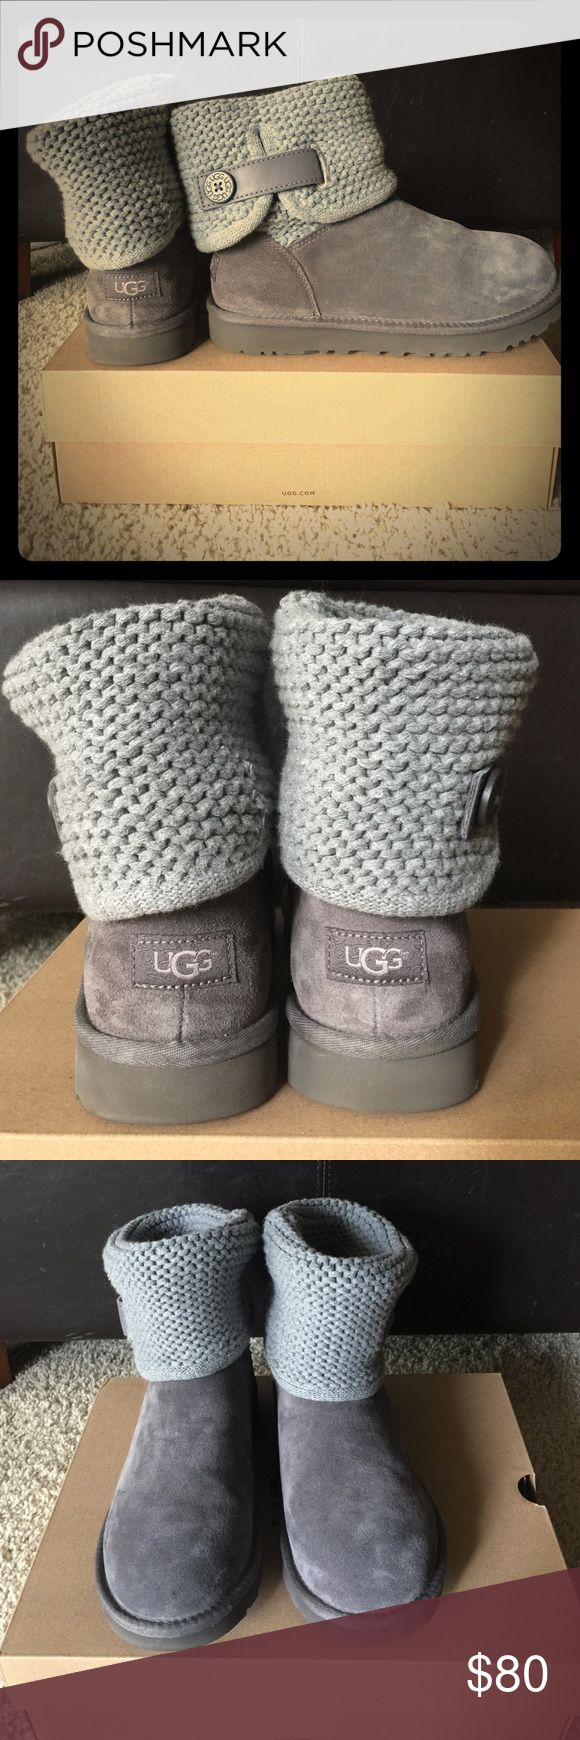 Women's UGG Boots - Shaina - size 8 Women's UGG Boots - Shaina - size 8 - GREY - LIKE NEW! - only worn twice - original box/packaging UGG Shoes Winter & Rain Boots